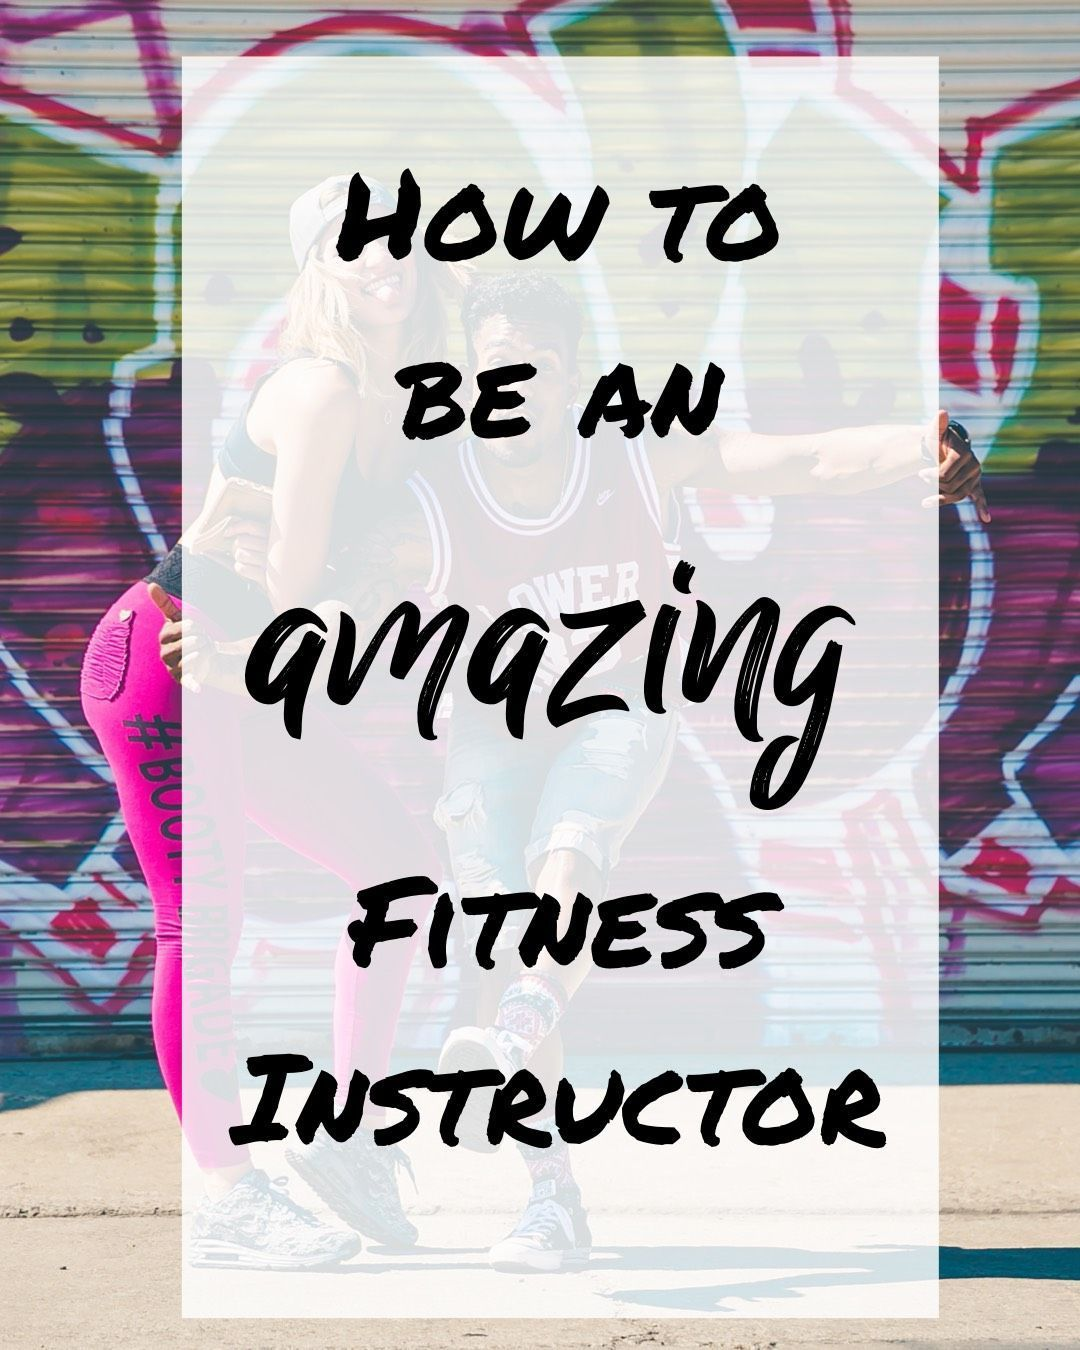 Want to be a great fitness instructor? These 4 tips will help take your teaching to the next level....